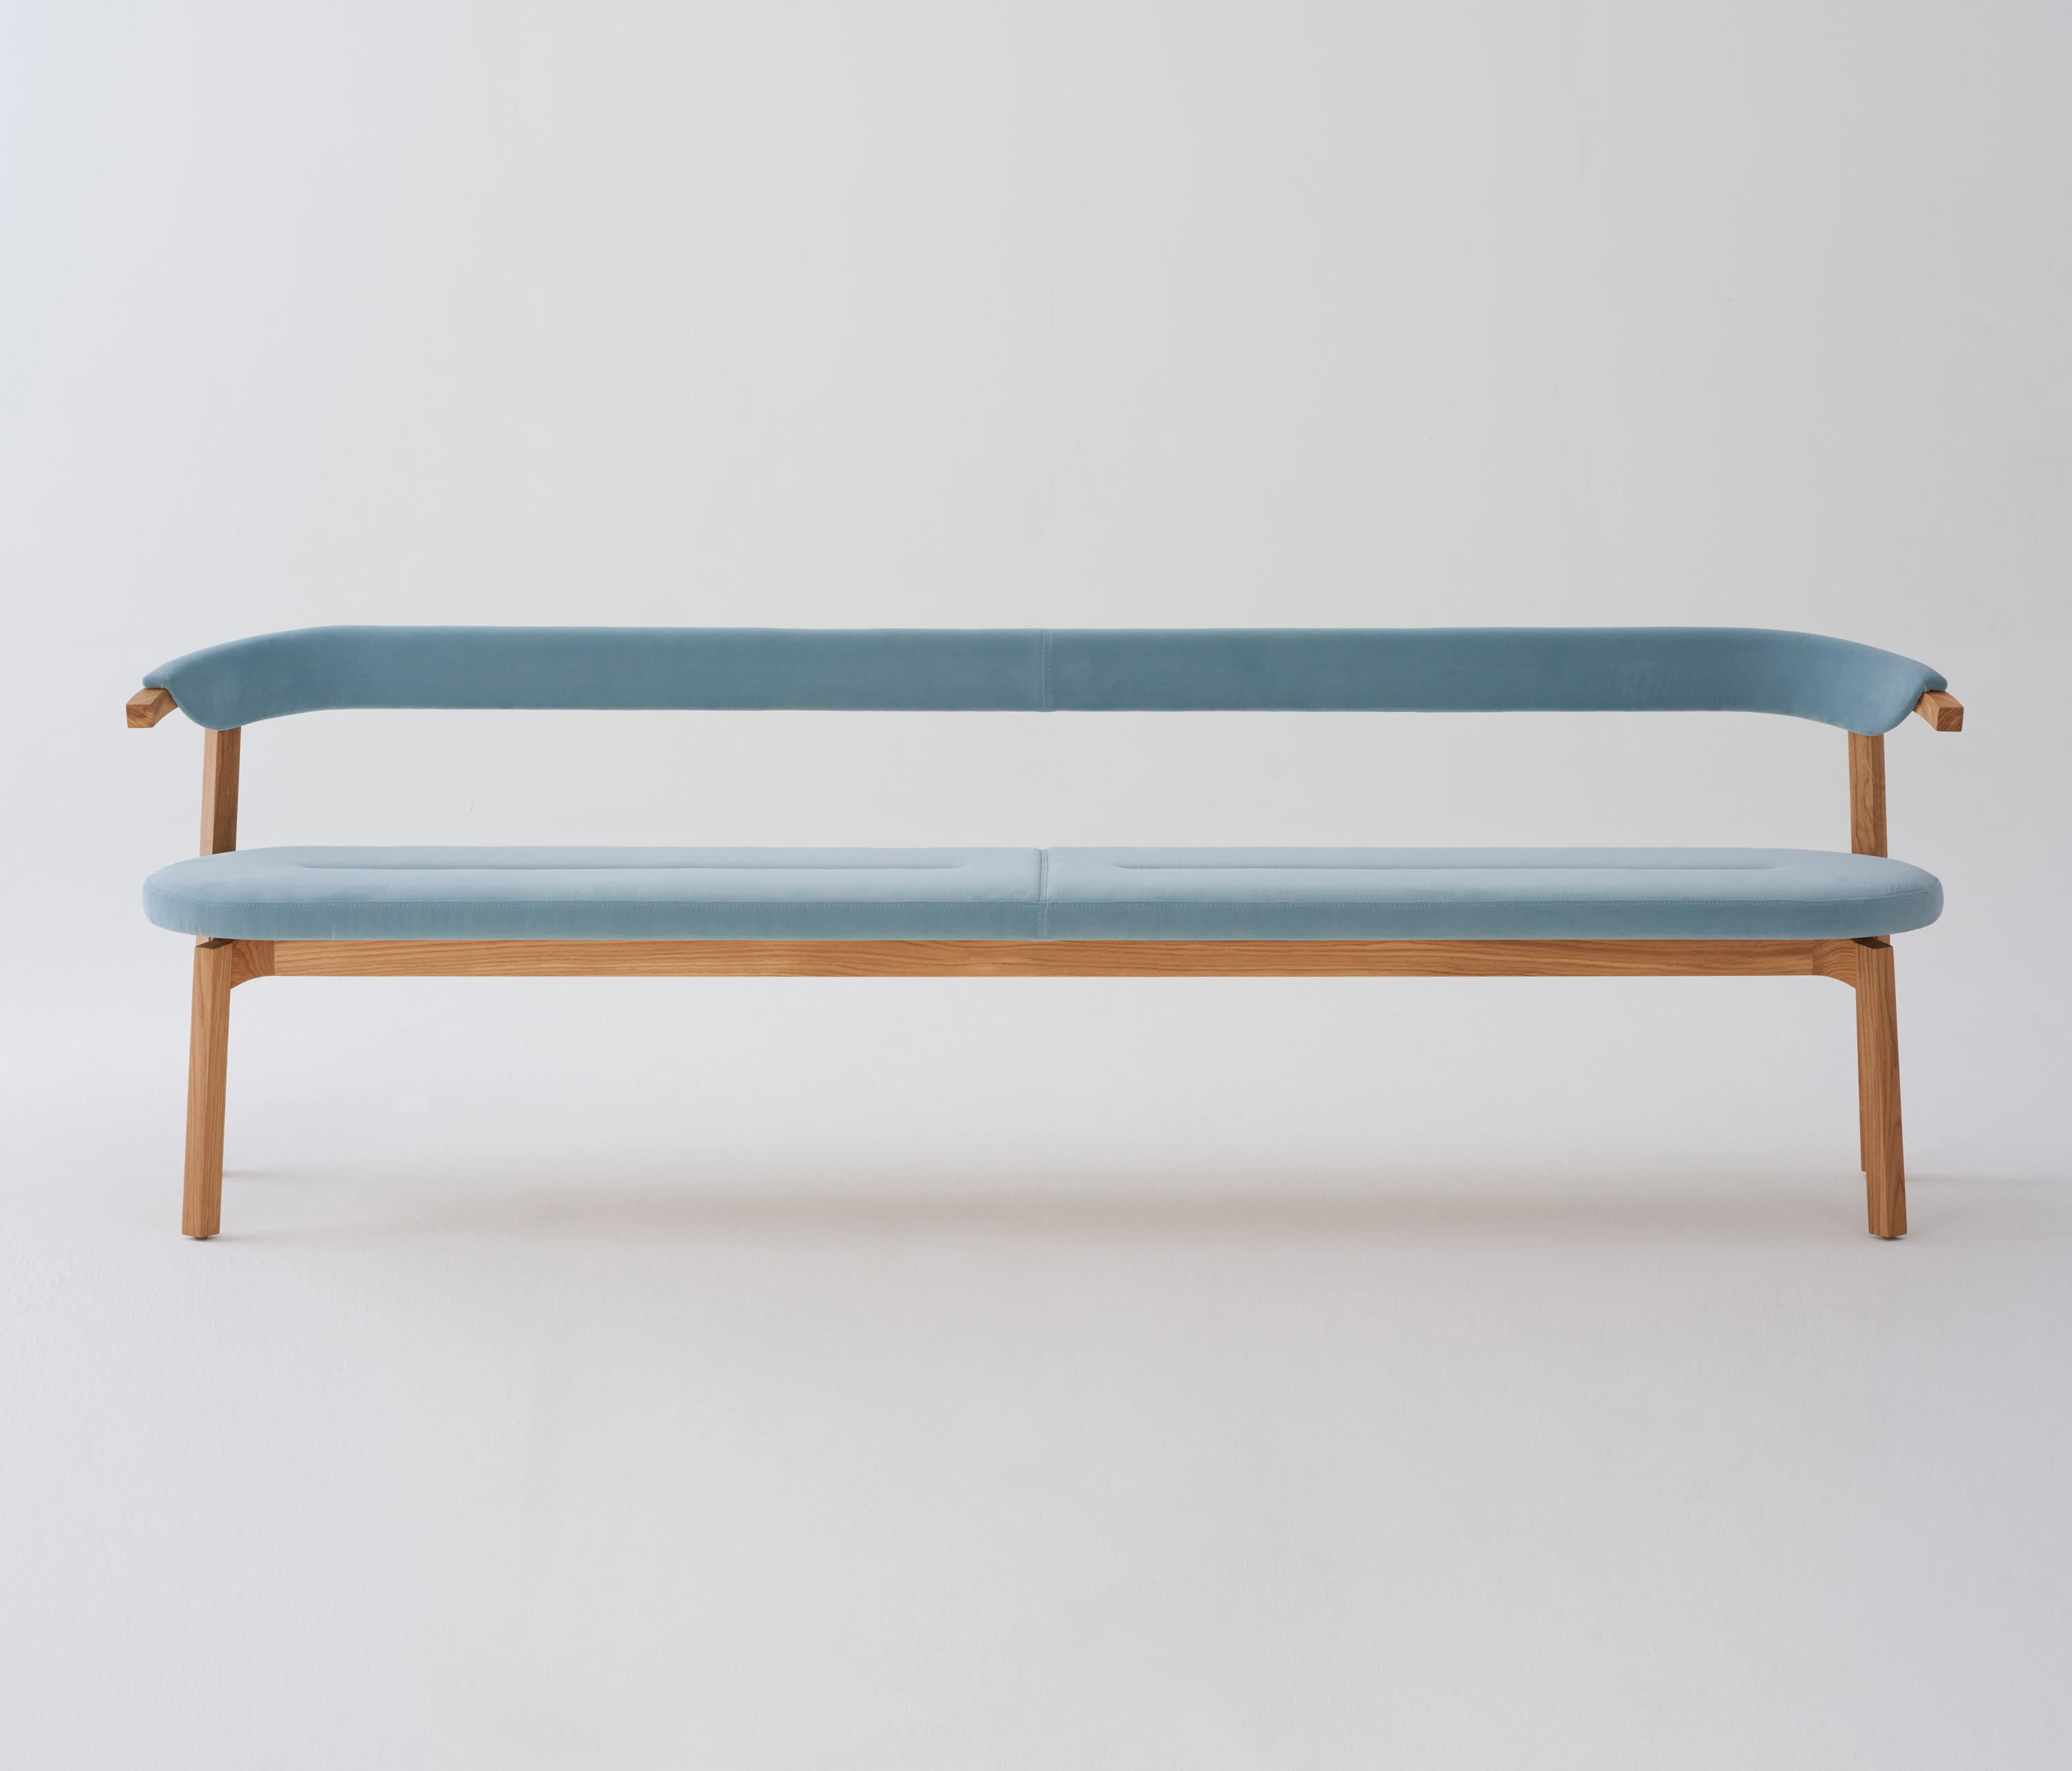 benches with armrests  high quality designer benches  architonic - weda  waiting area benches  davis furniture